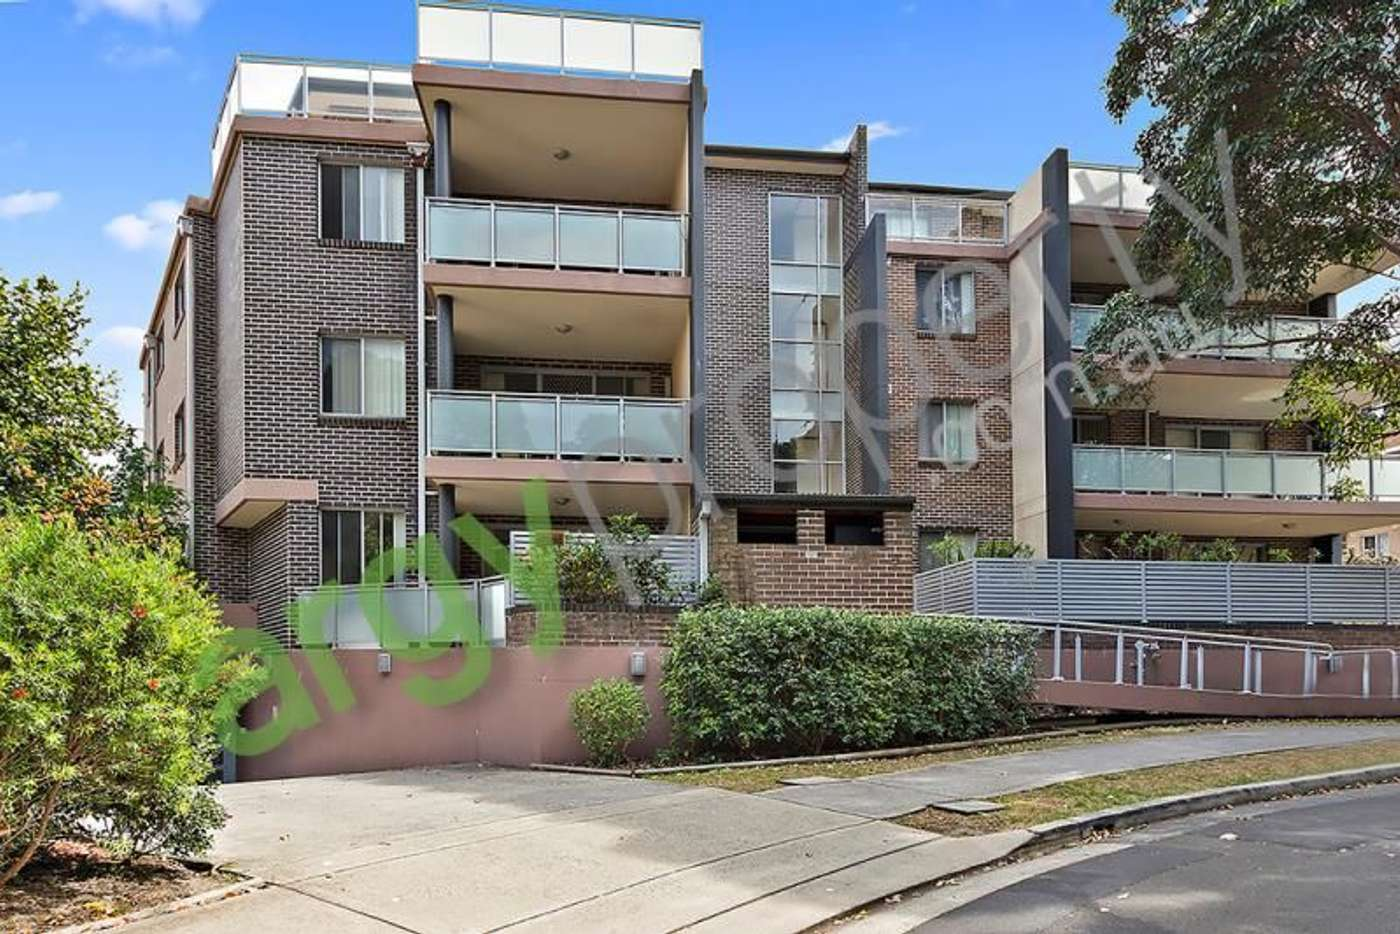 Main view of Homely apartment listing, 7/1-5 The Strand, Rockdale NSW 2216